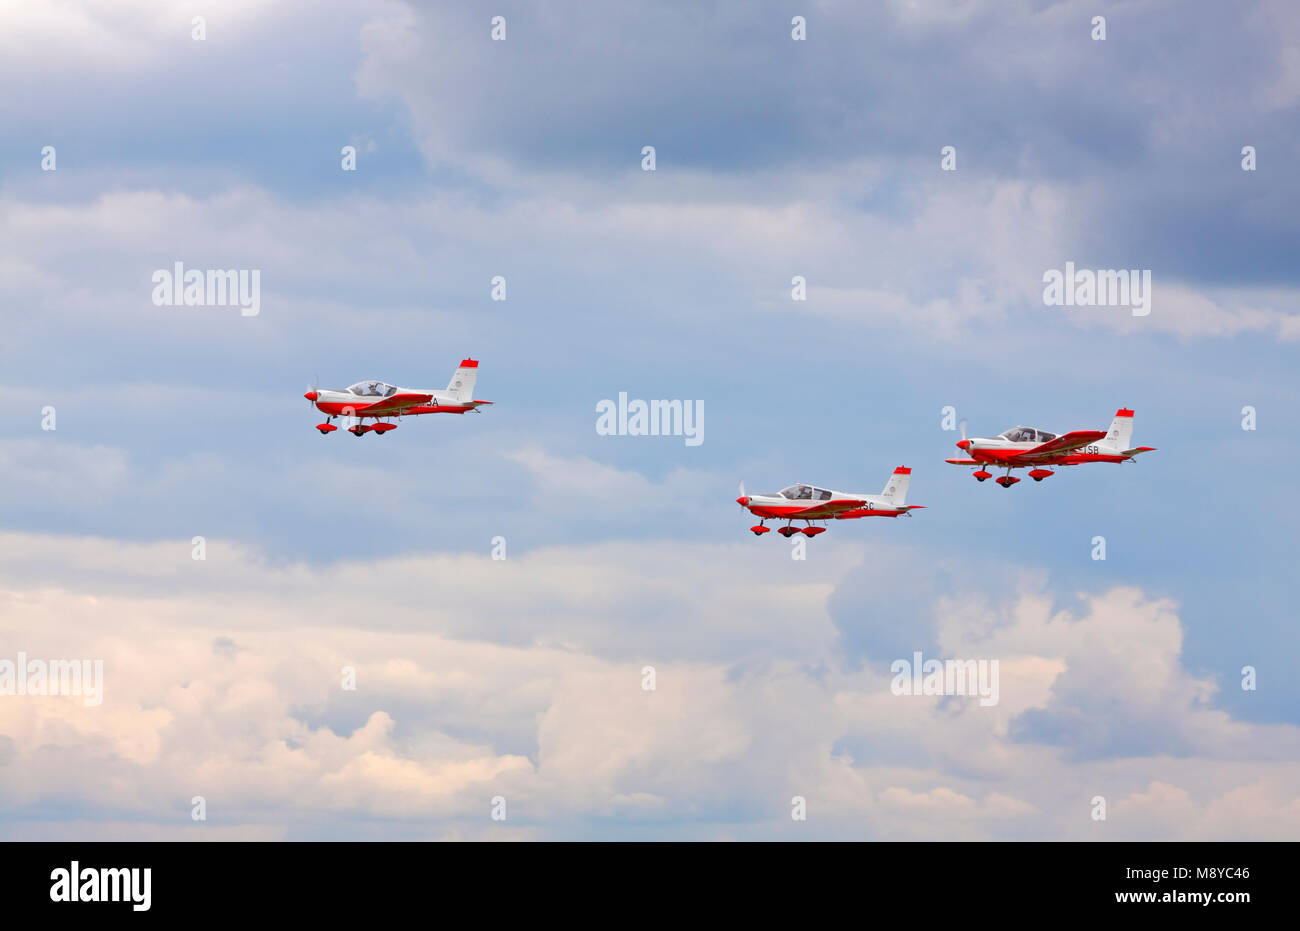 The Zlin 242L with two Zlin 143LSi flying over cloudy sky during International Air Show at the 90th Jubilee of The - Stock Image